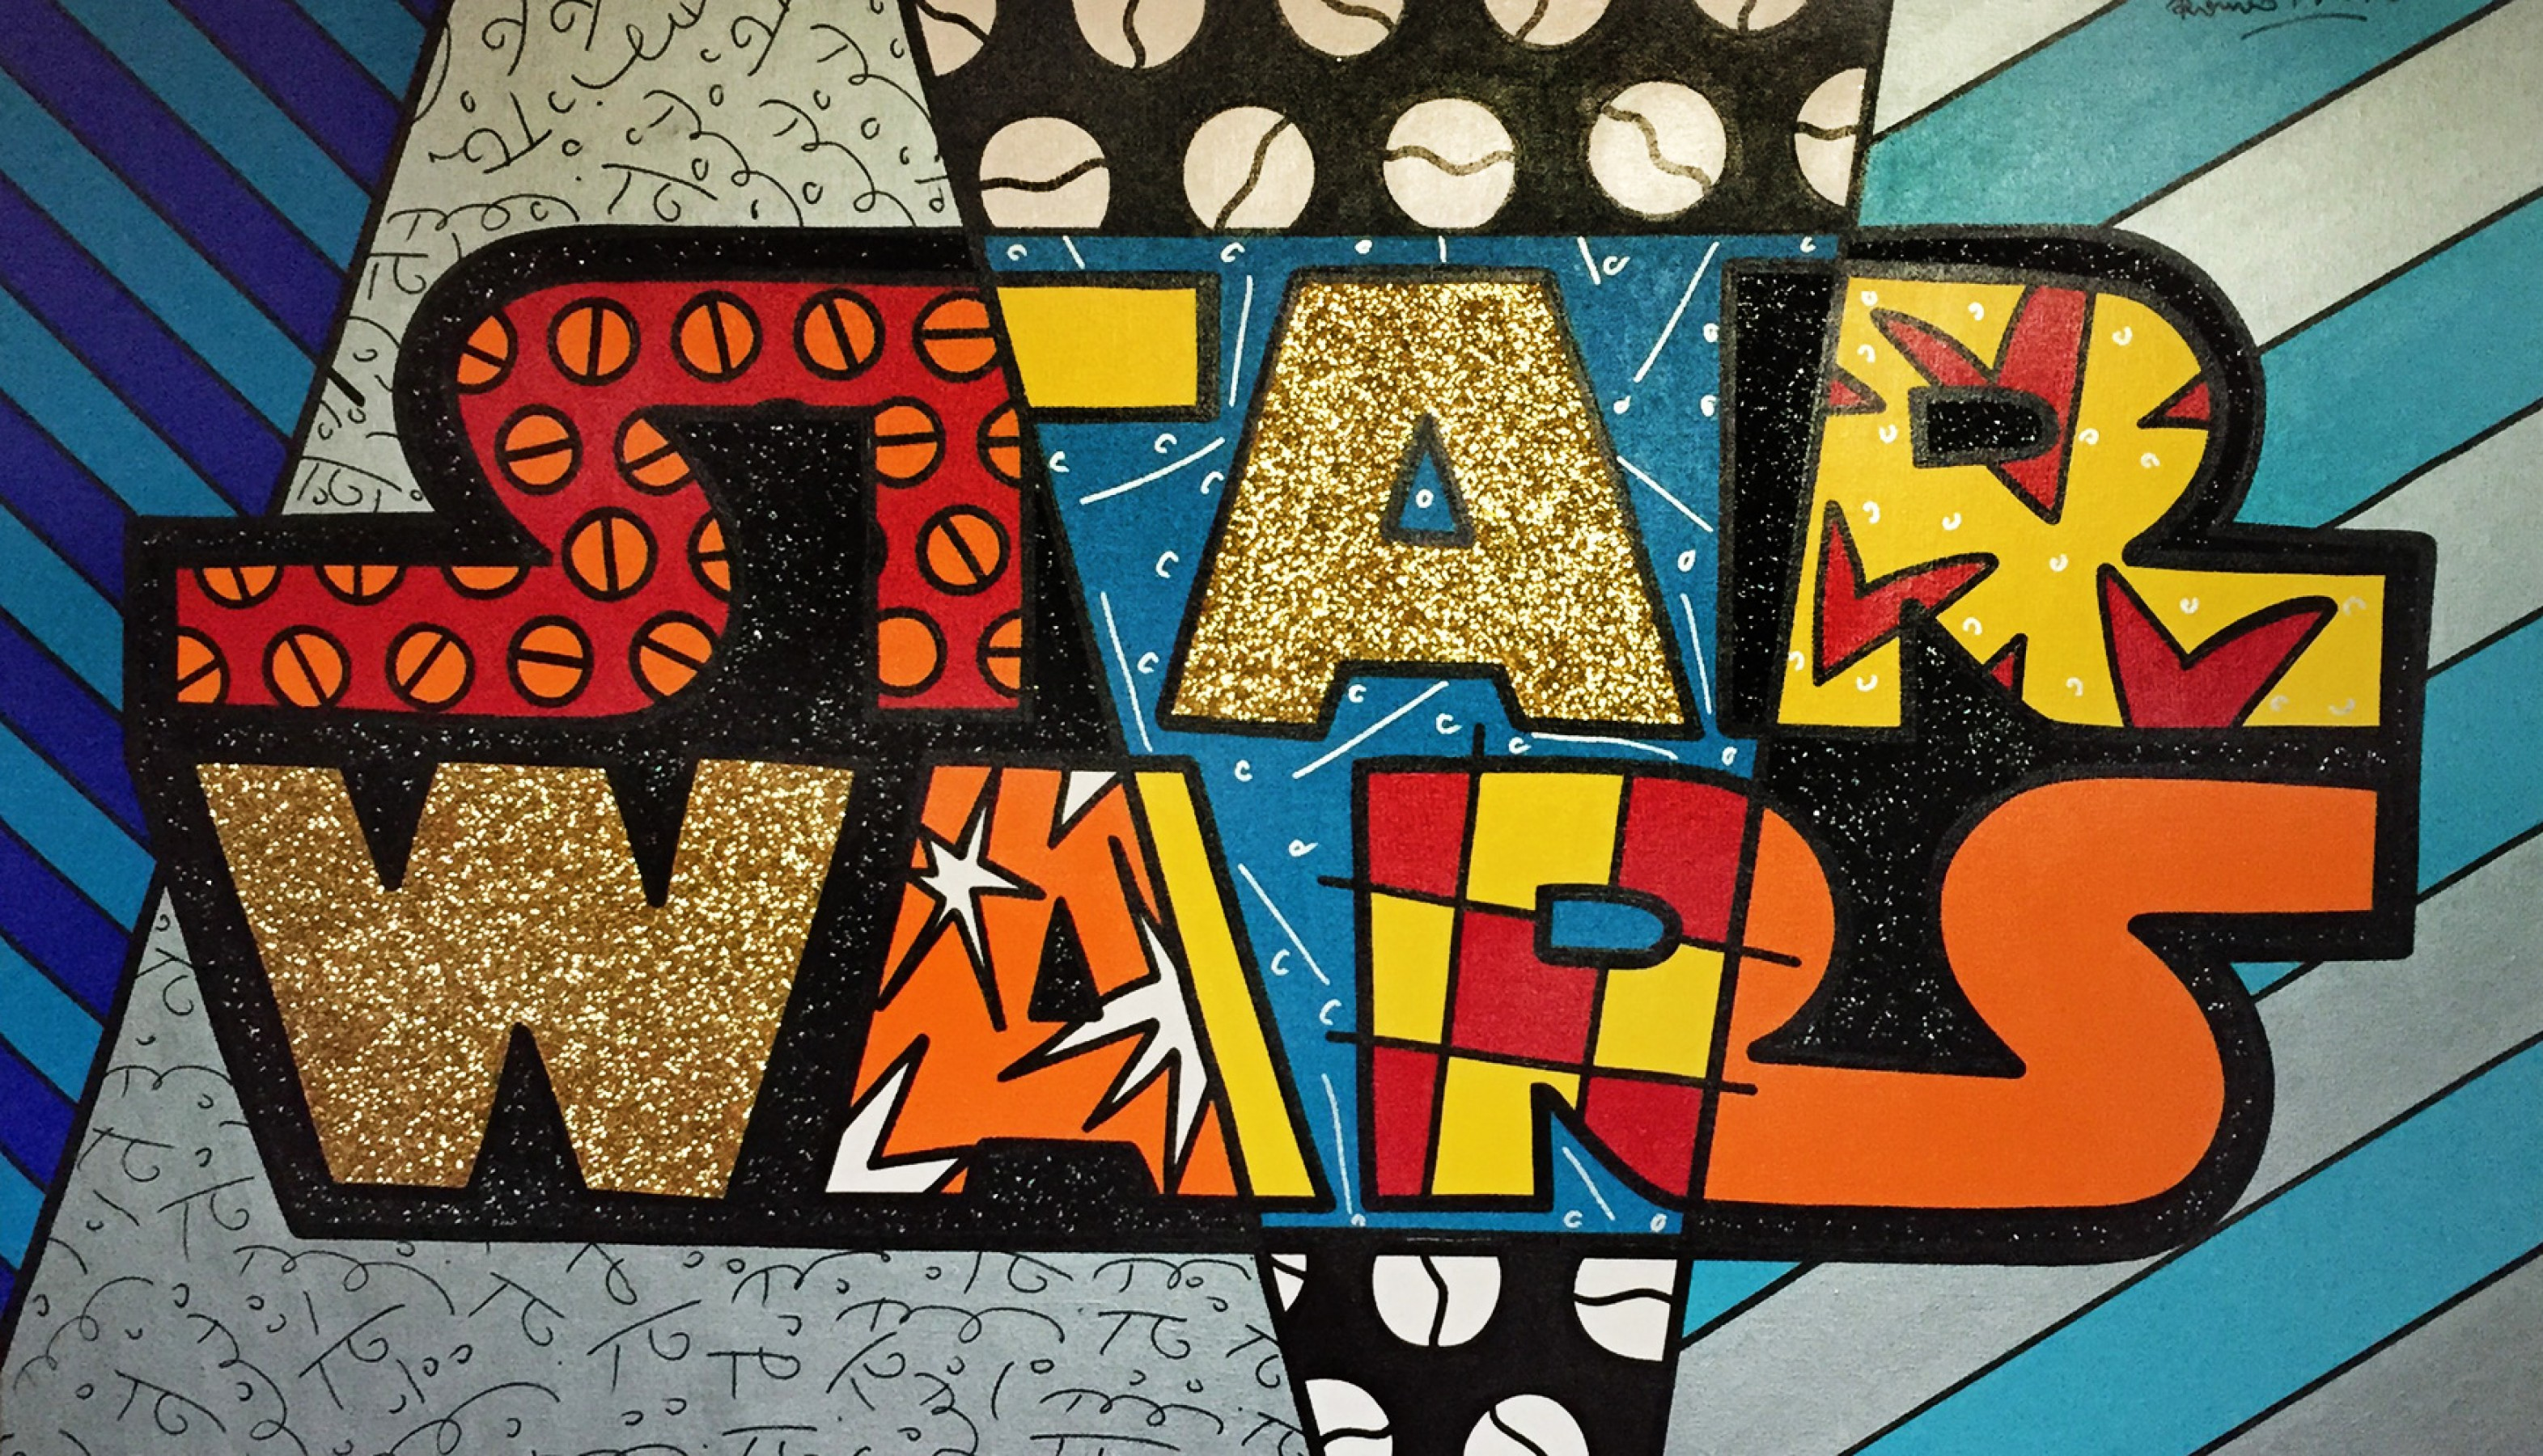 Star Wars 2011 44x68 by Romero Britto